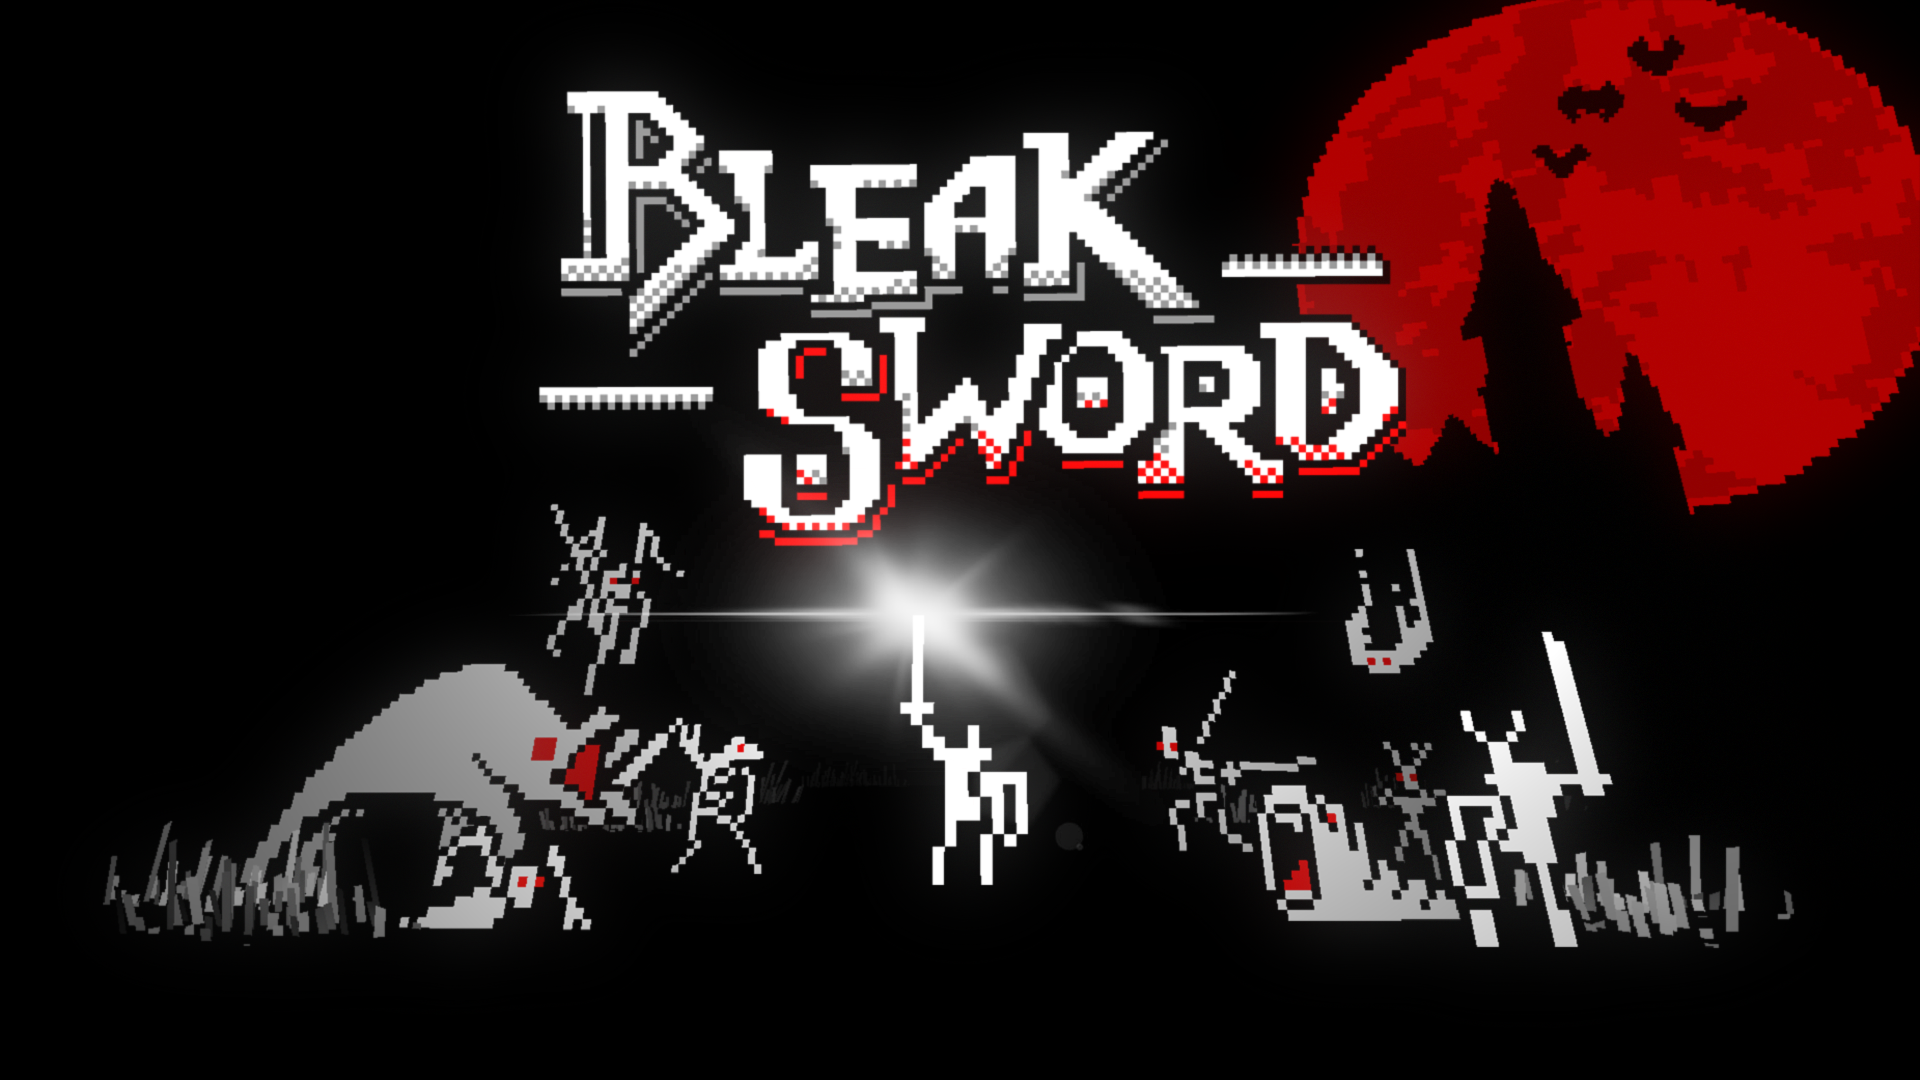 'Bleak Sword' Just Got Its First Big Content Update since Launch Bringing in New Levels, Enemies, Music, and More